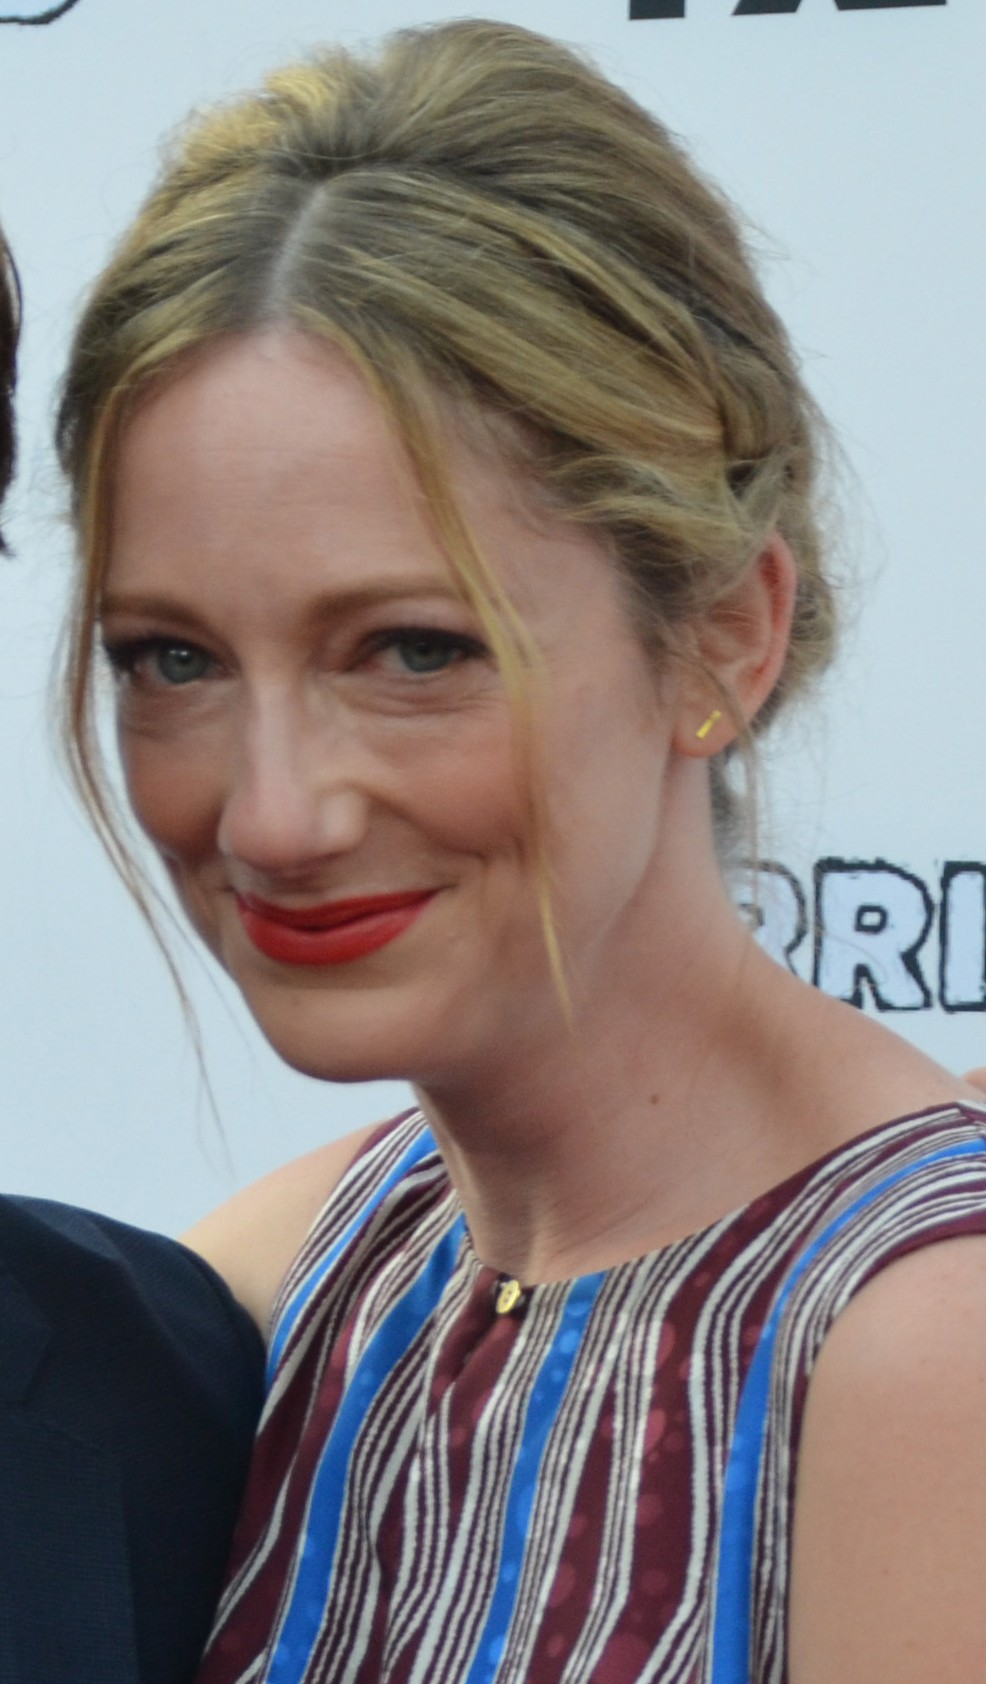 judy greer wikipedia - Katie Warren Top Resume